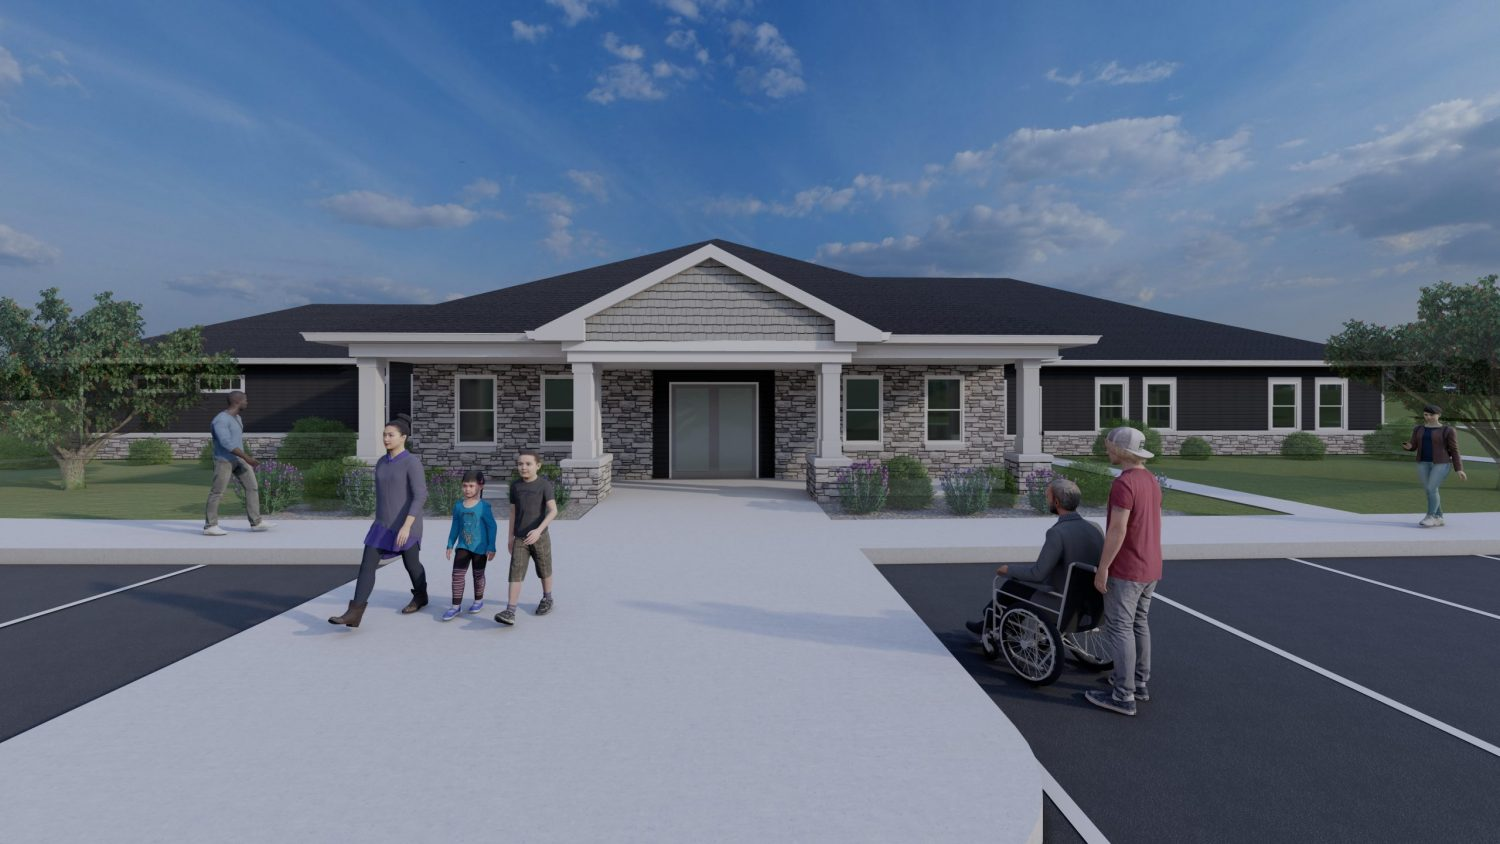 clubhouse rendering with people